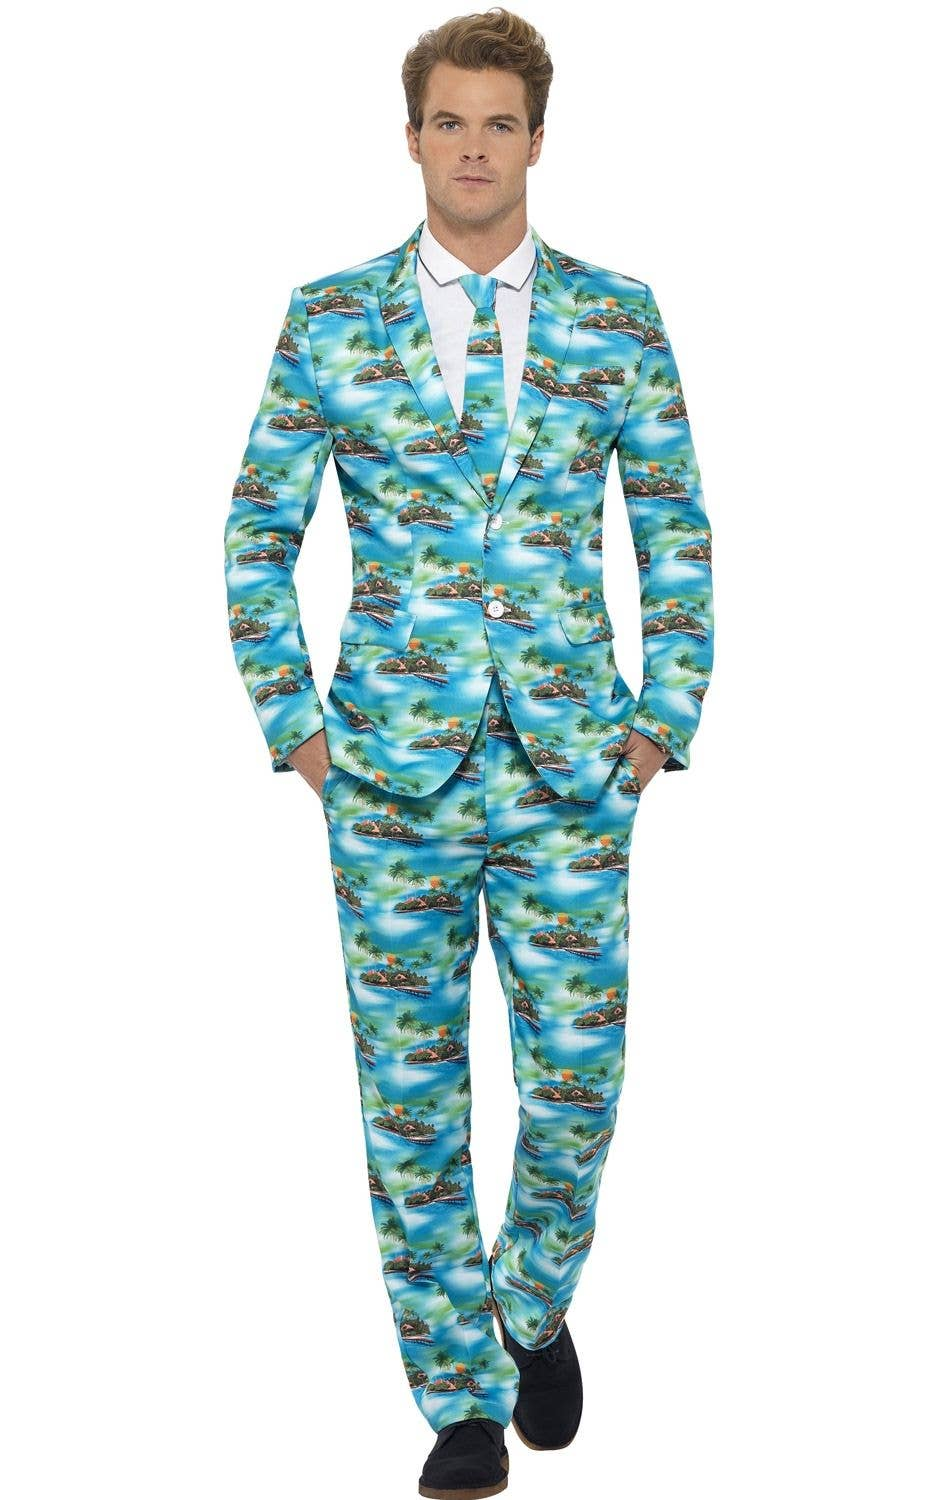 71b31e4c3f06 Tropical Hawaiian Stand Out Suit | Blue Hawaiian Print Men's Costume